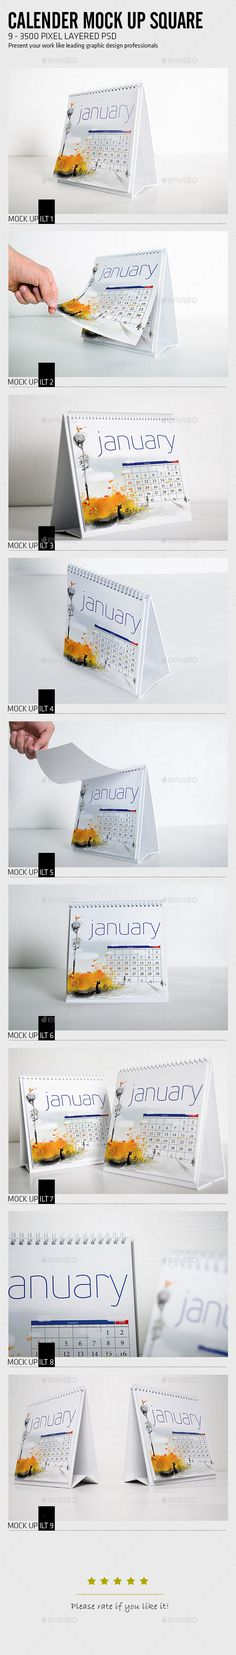 Calender Mock Up Square — Photoshop PSD #vertical calendar #year • Available here → https://graphicriver.net/item/calender-mock-up-square/17705545?ref=pxcr